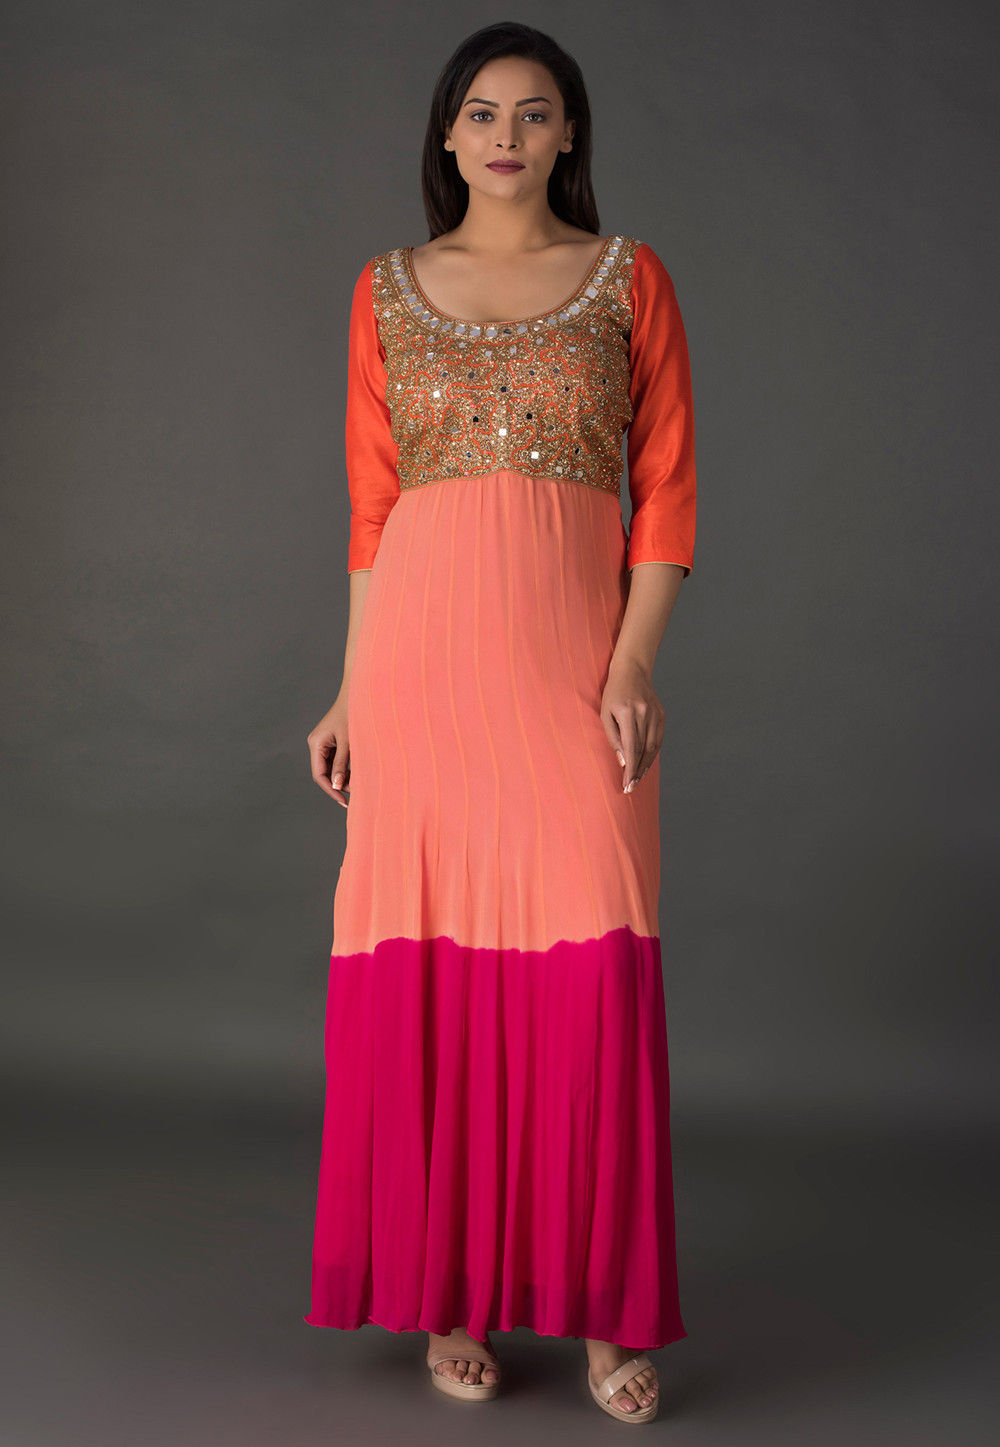 Embroidered Georgette Dress in Shaded Peach and Pink